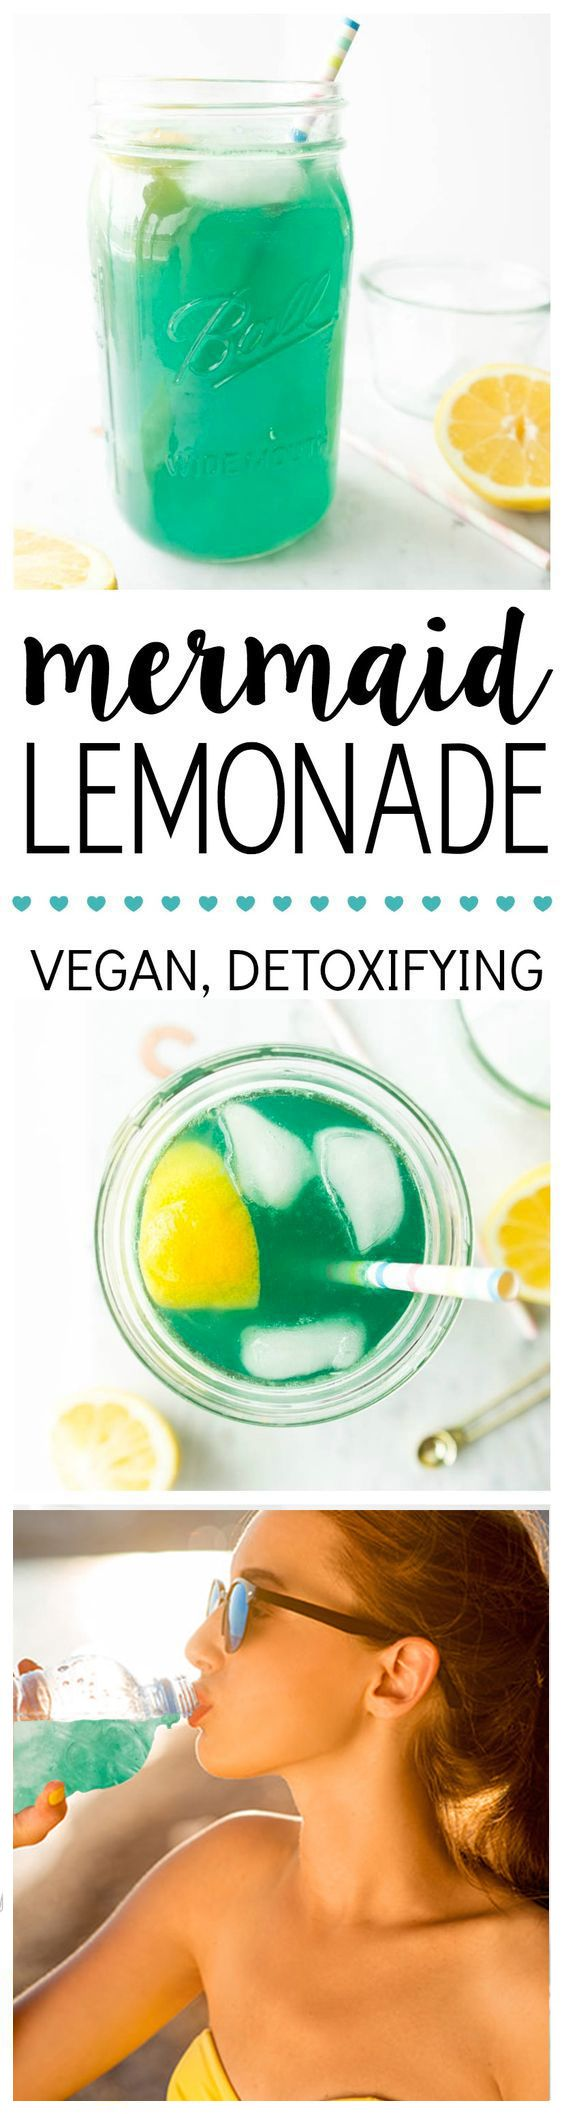 Mermaid Lemonade Detox